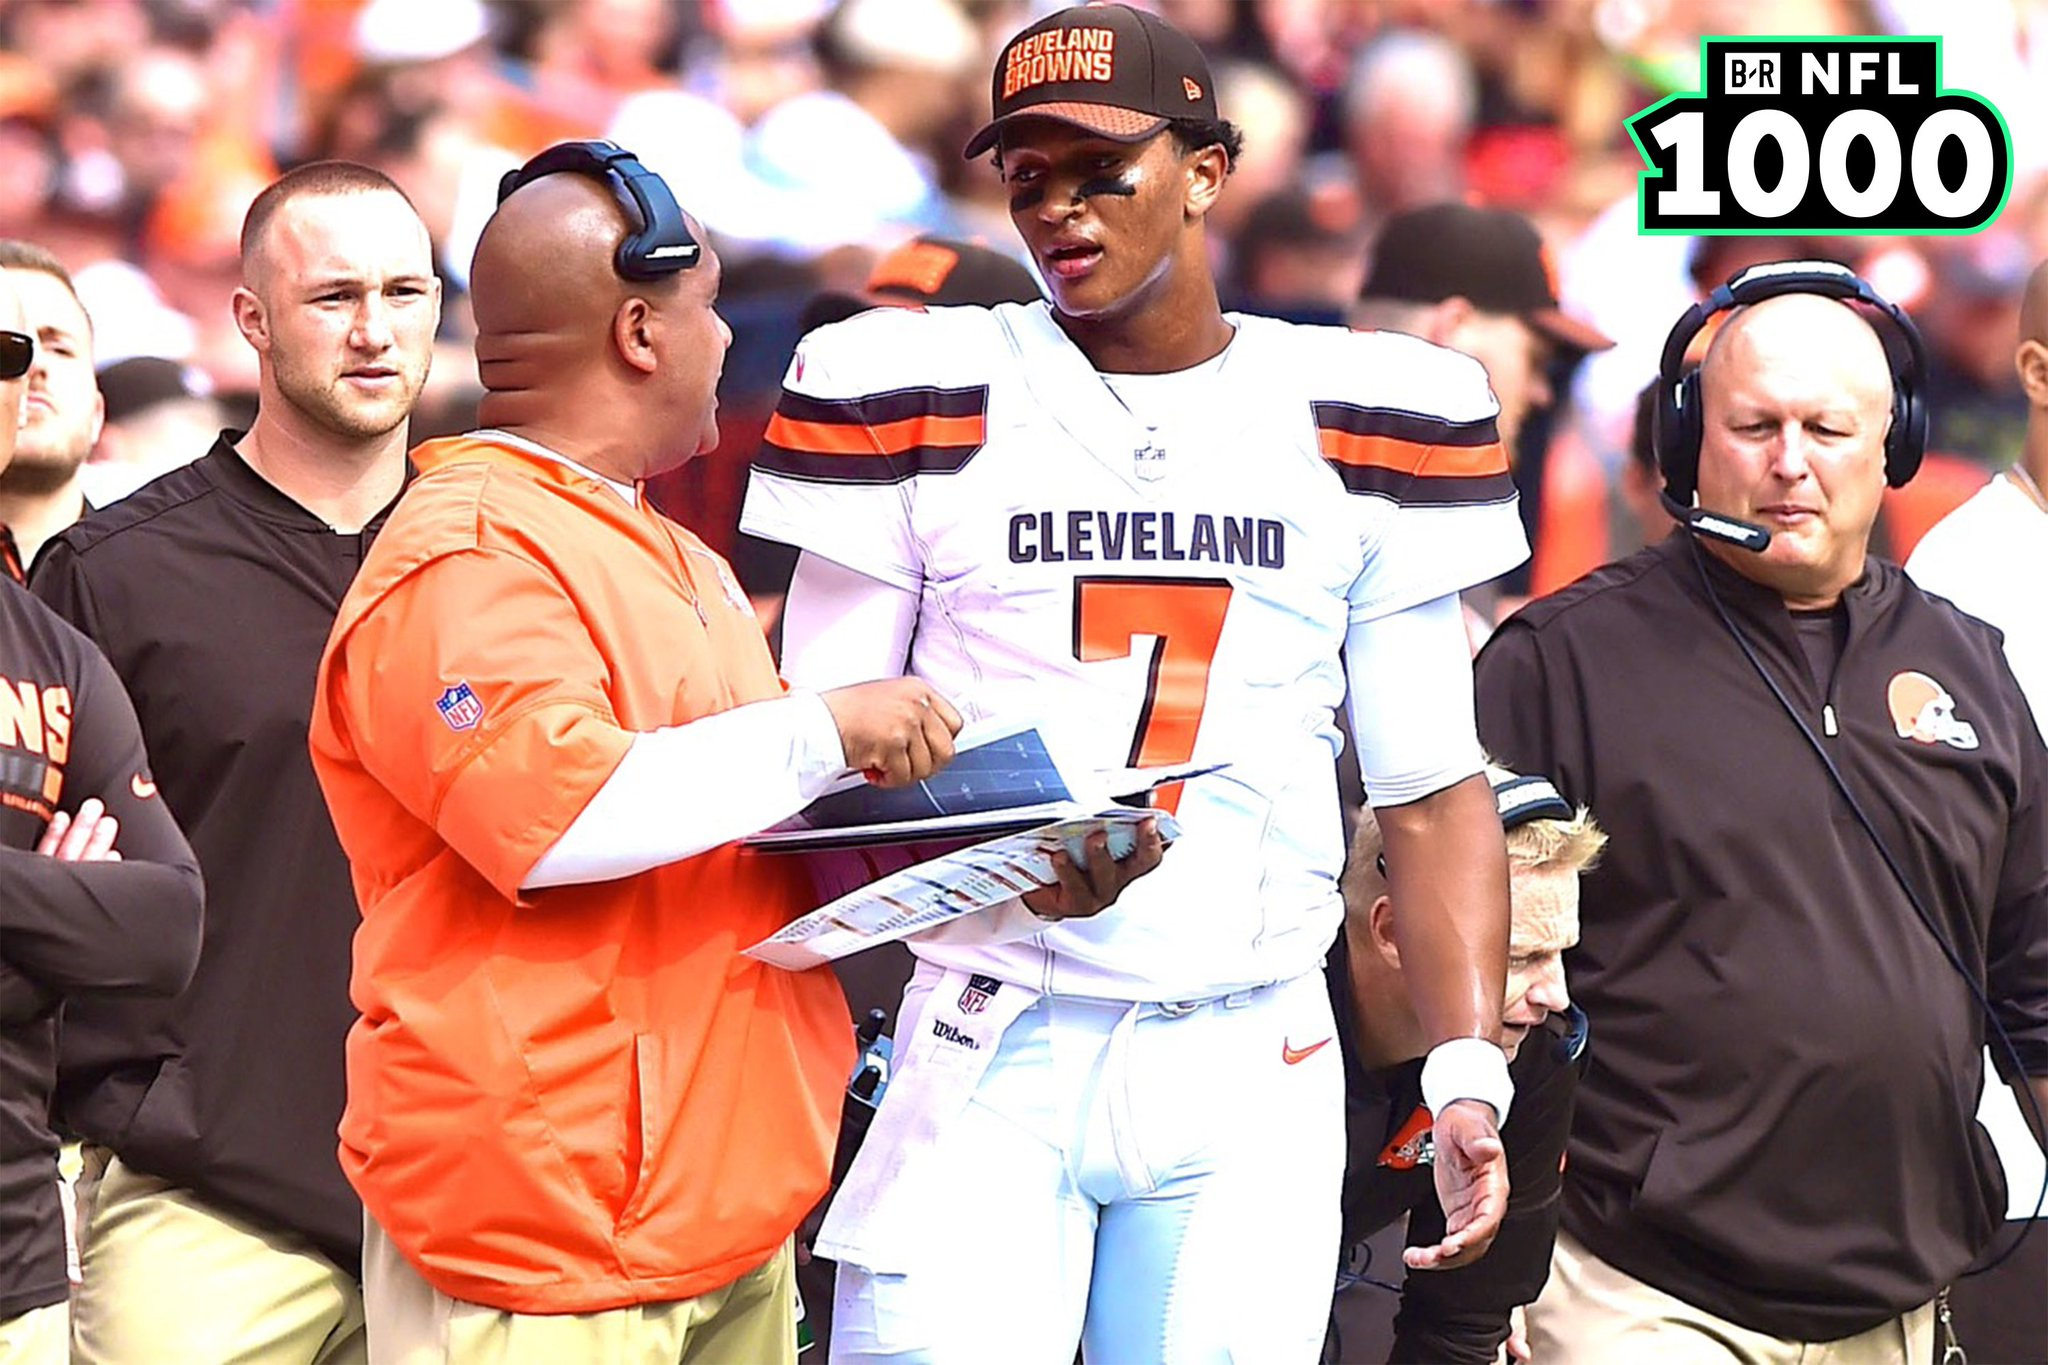 Is it already time for the Browns to move on from Kizer? NFL scouts go in on Week 5 �� https://t.co/zLvRWUNiFd https://t.co/2FT3JOoQQz